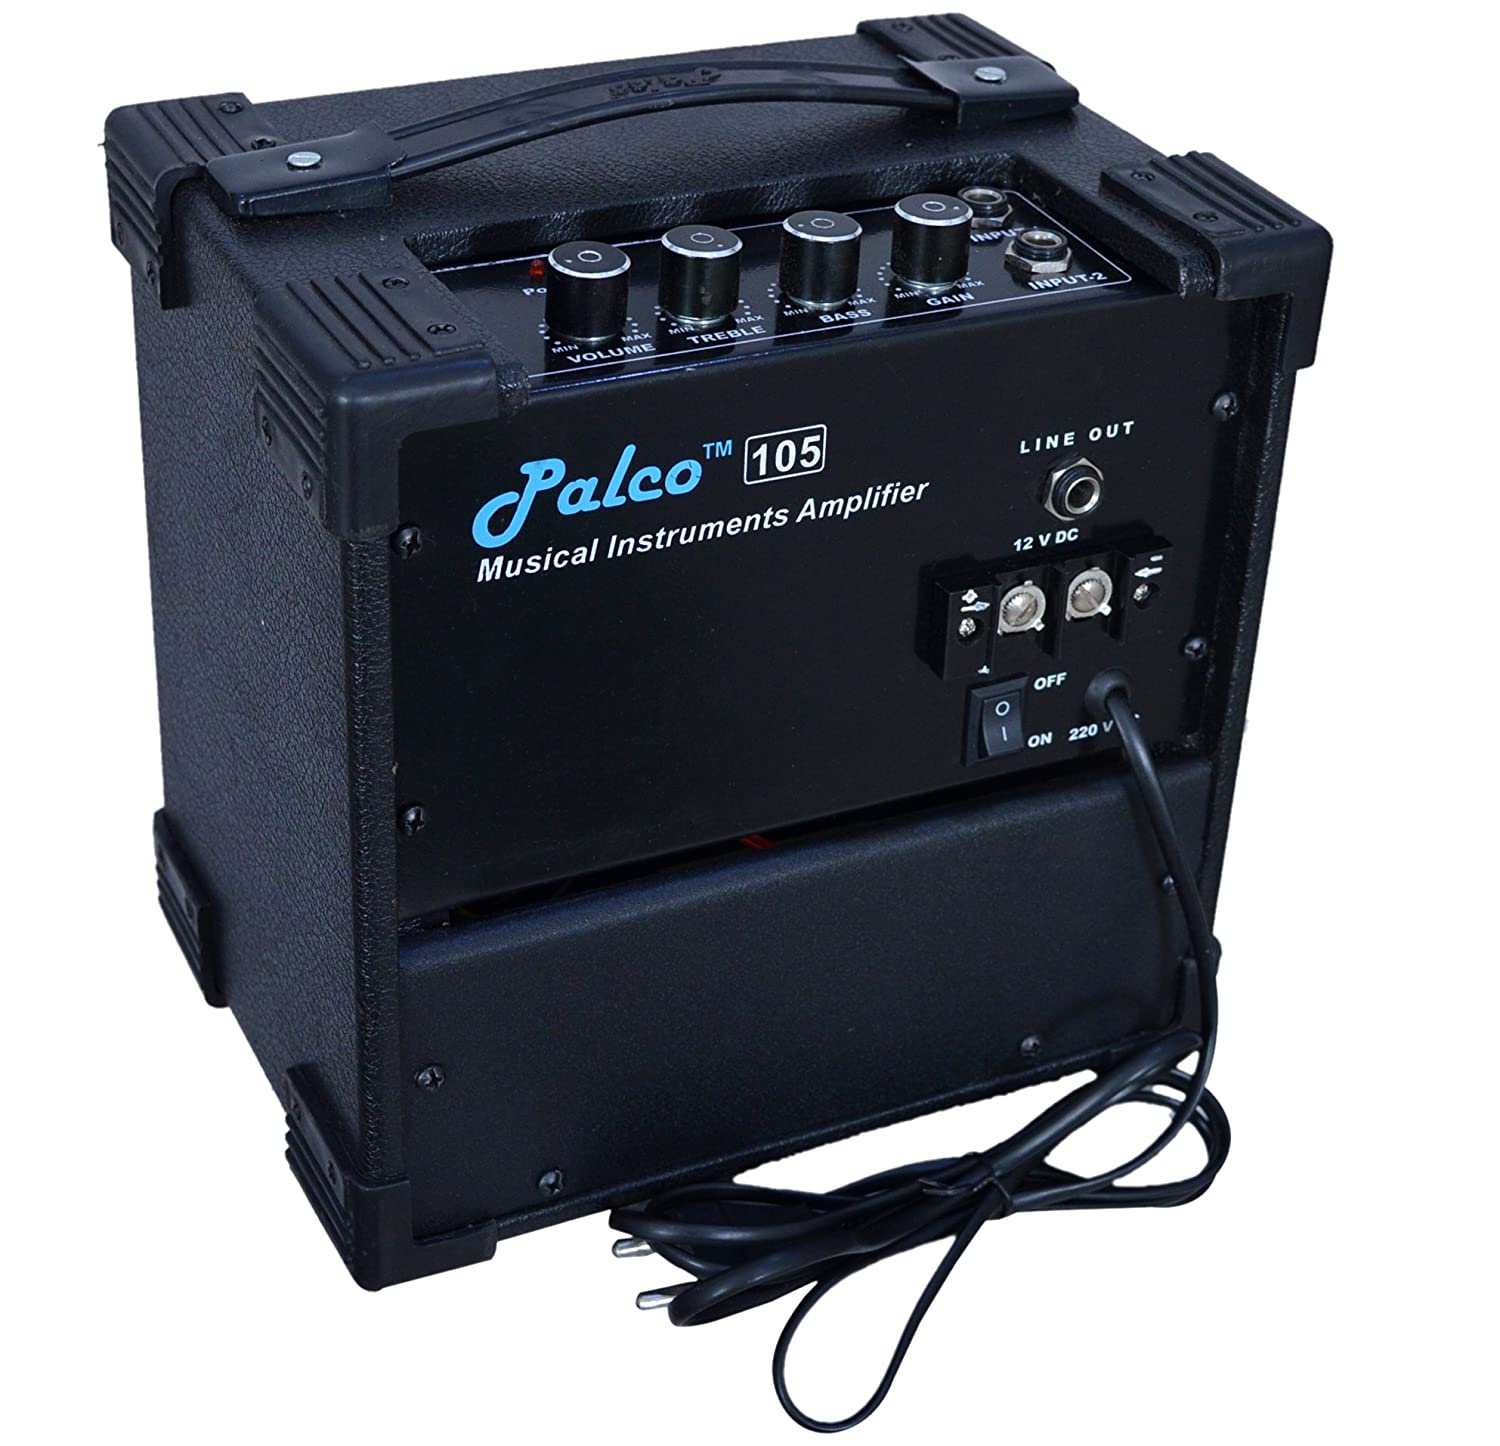 Palco Guitar Amplifier With Gain Musical Instruments Circuit Diagram For Mini Portable